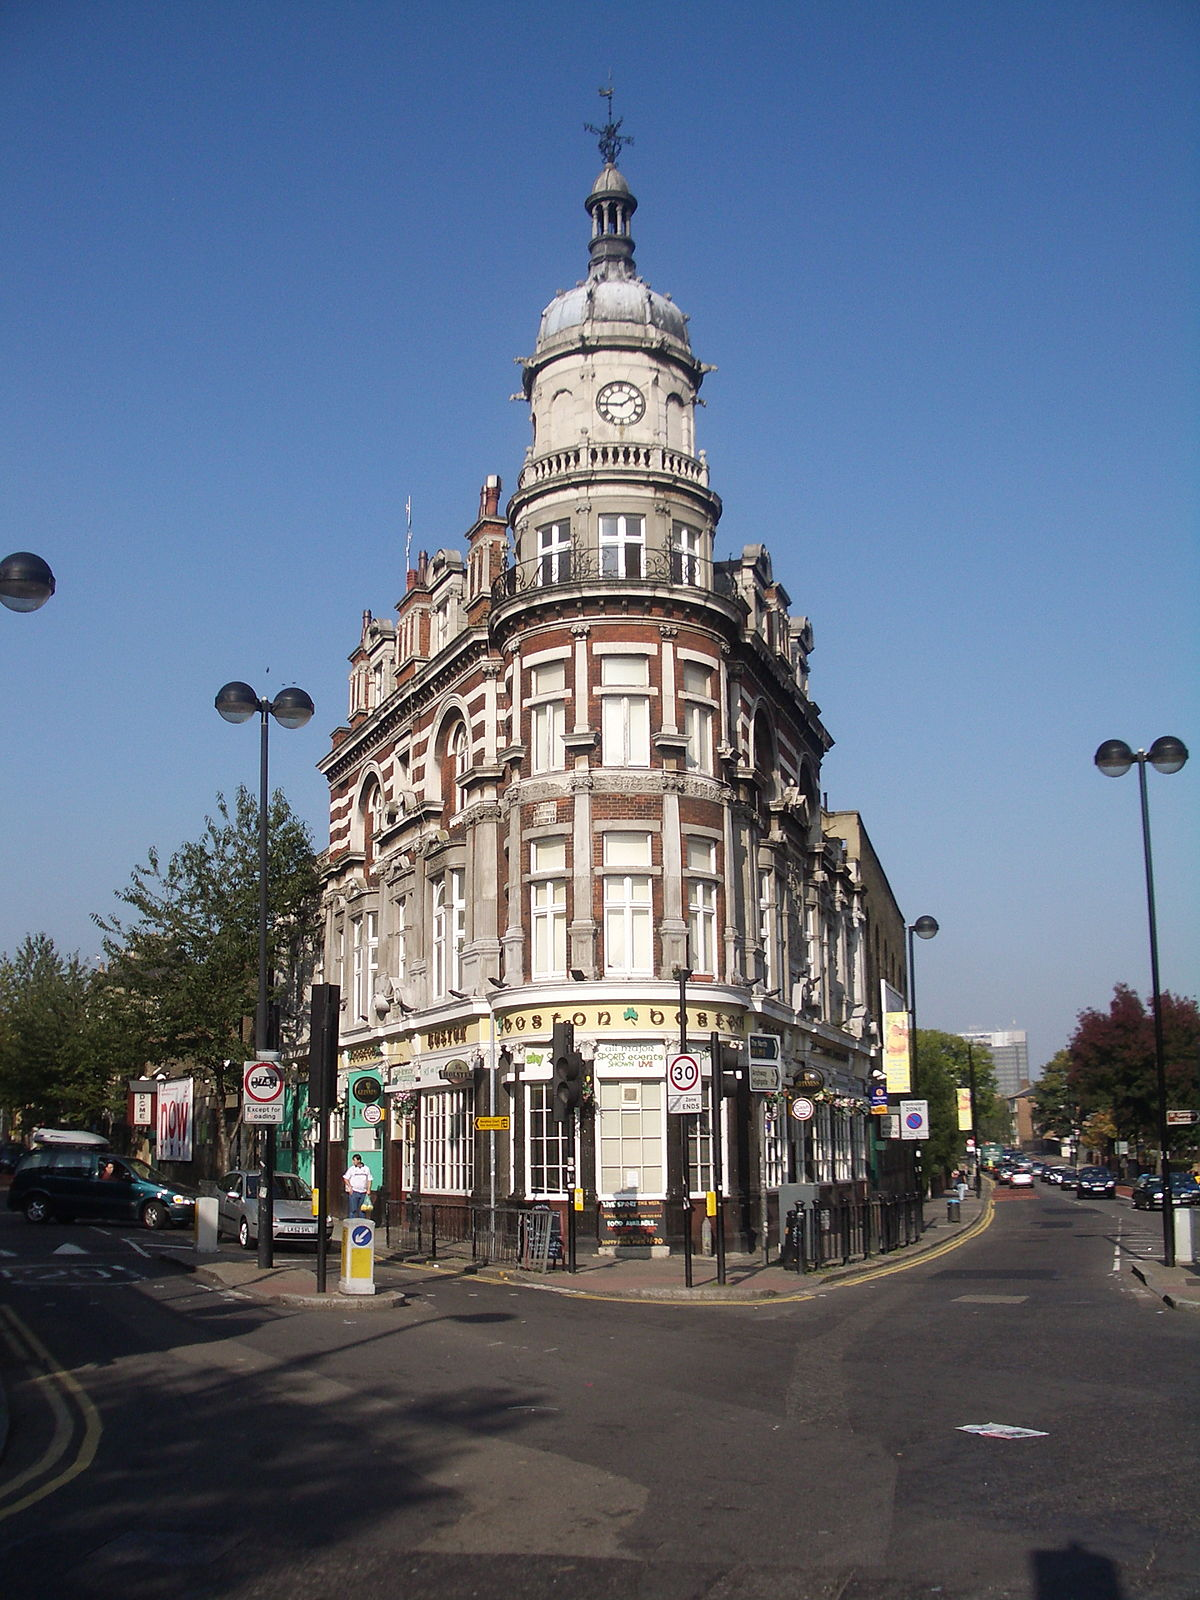 Tufnell Park Wikipedia